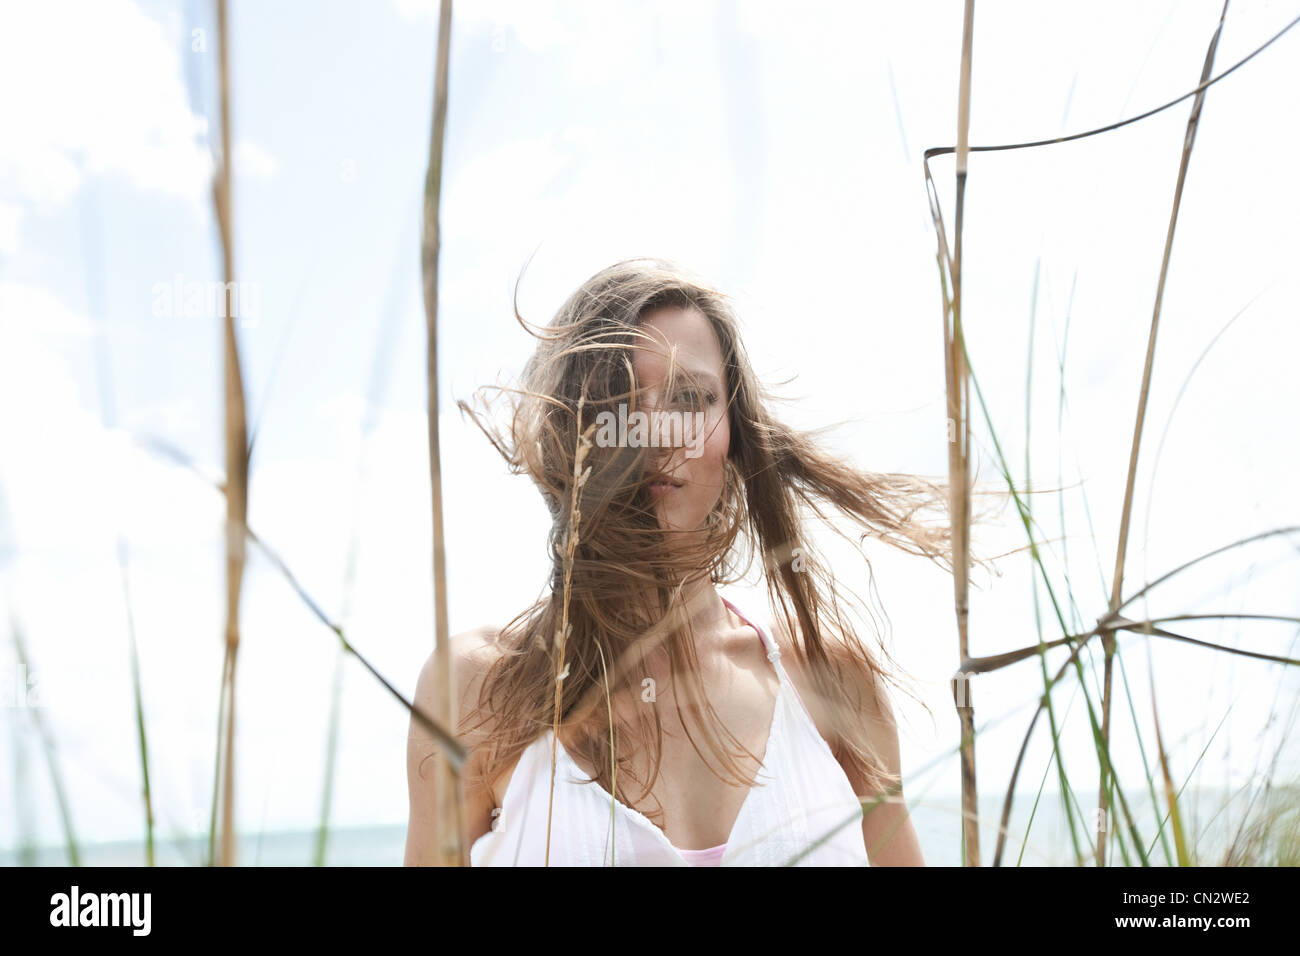 Young woman in grass with tousled hair - Stock Image